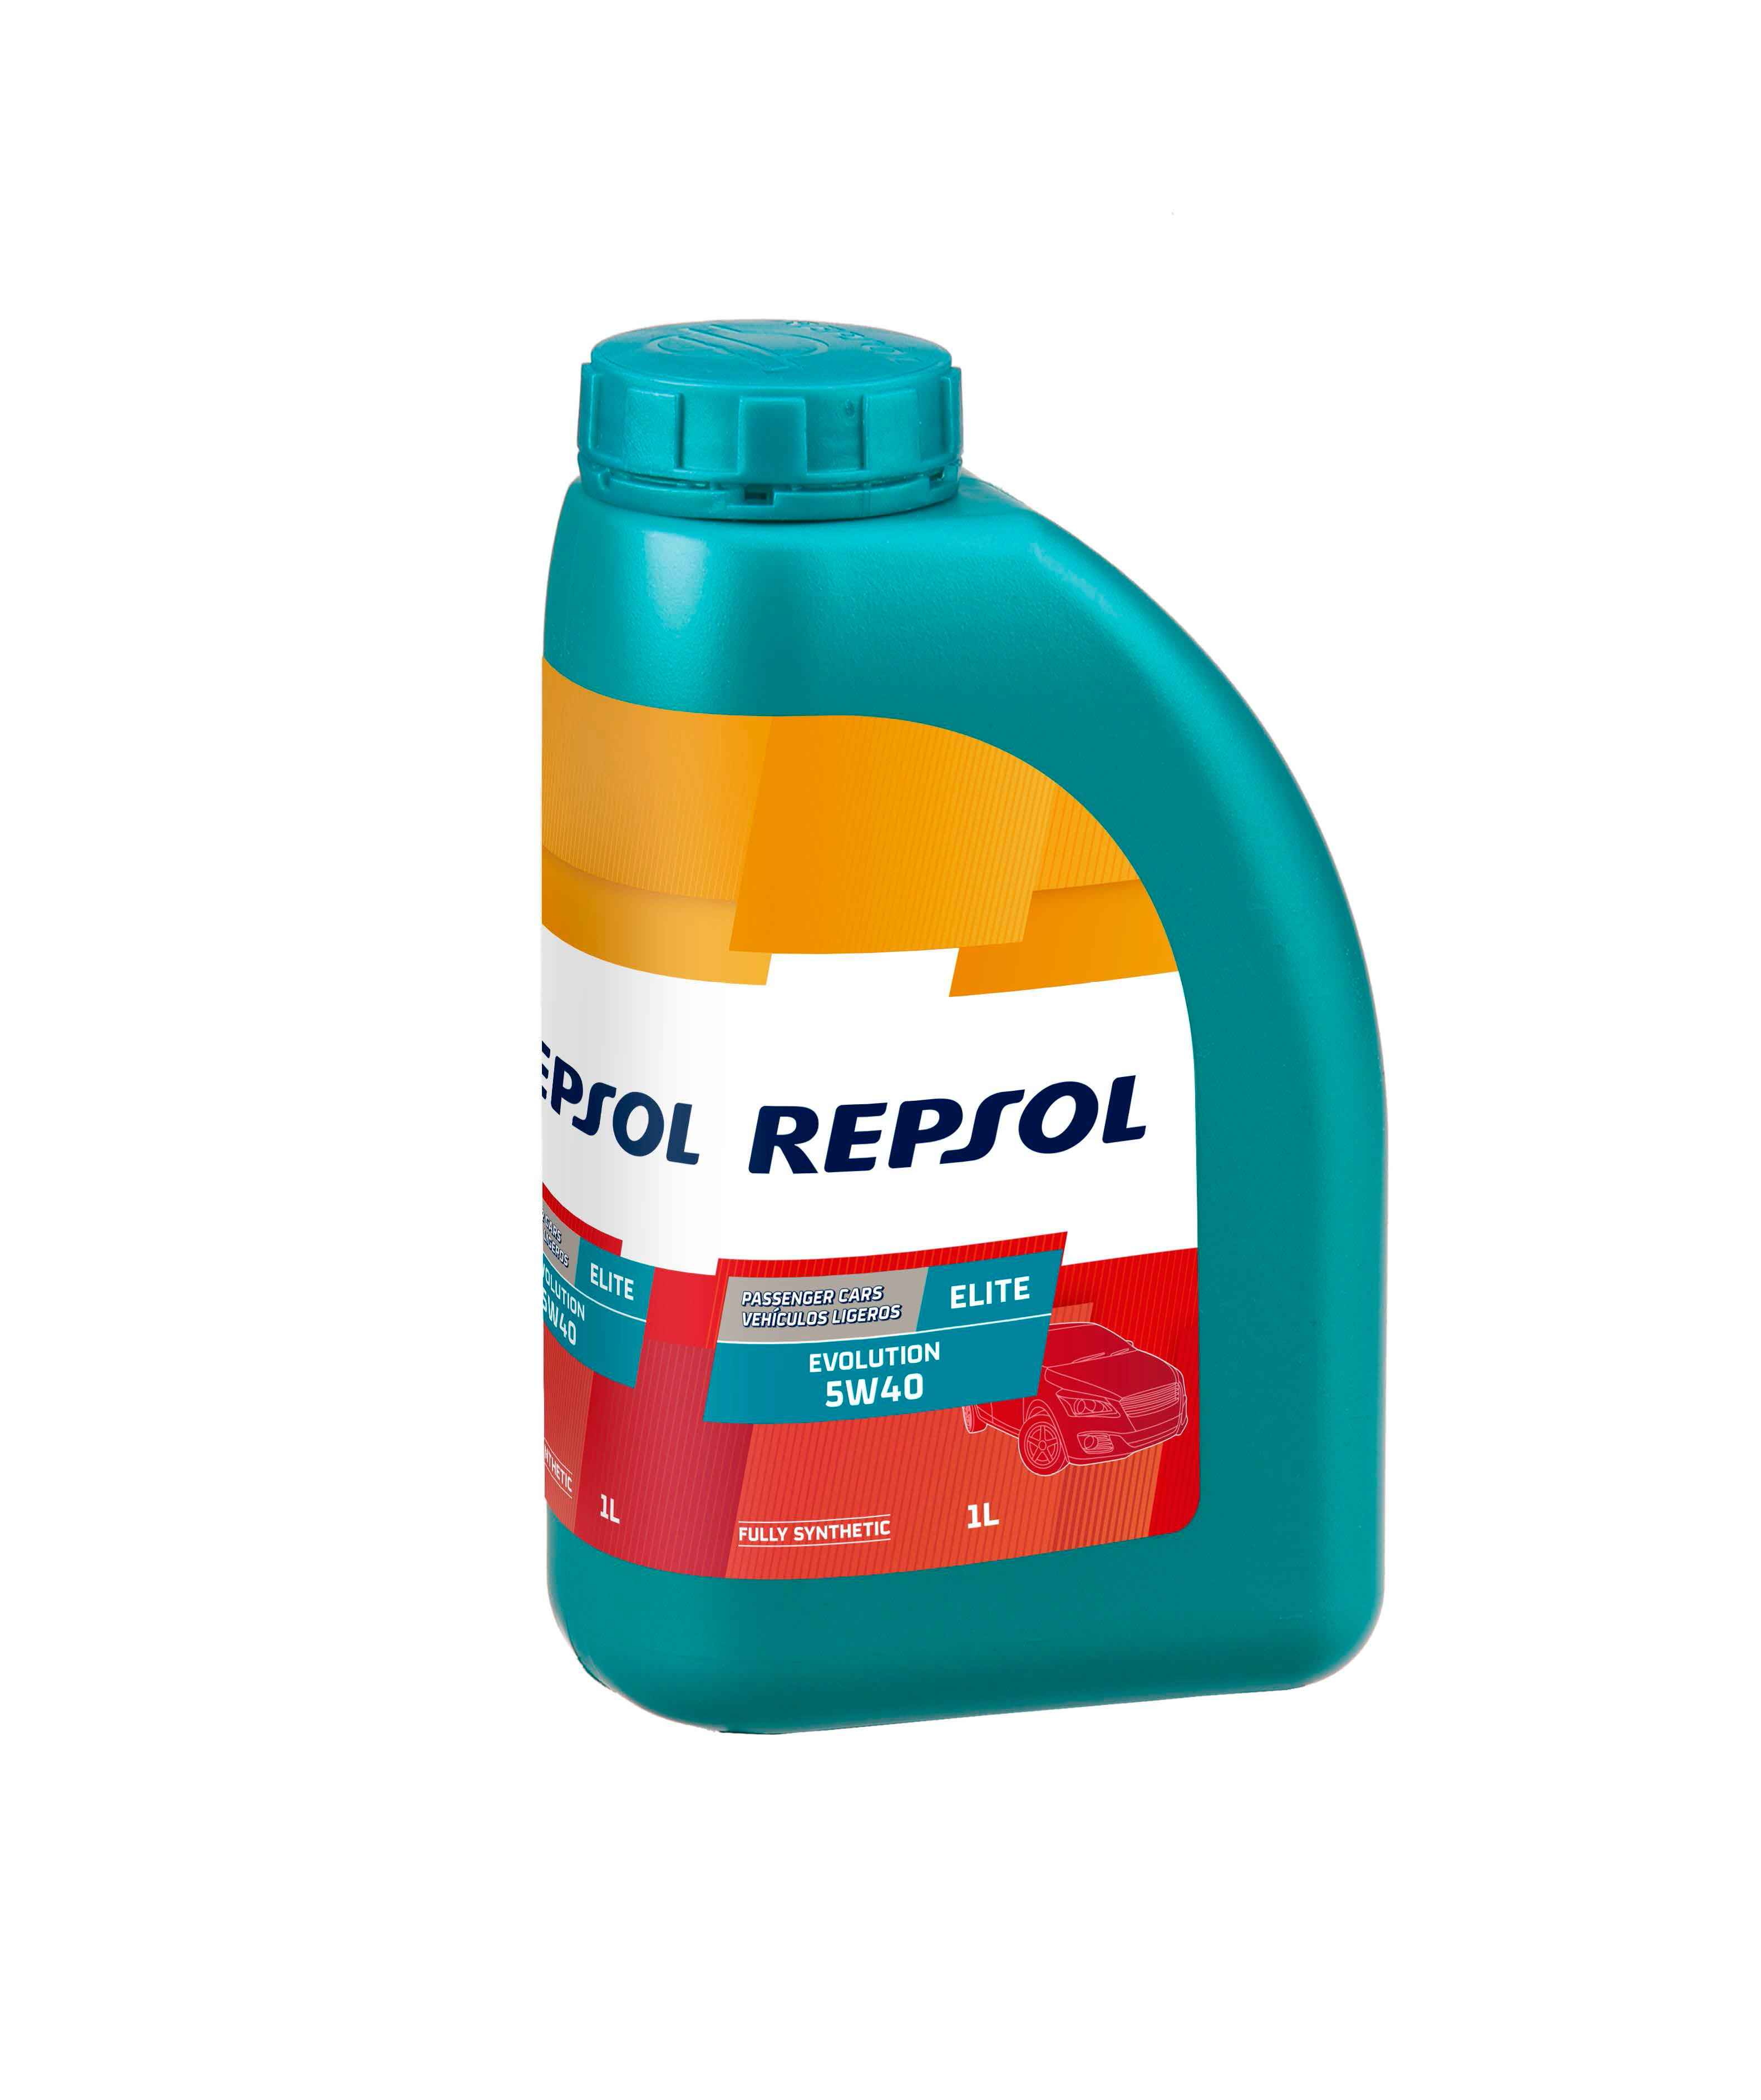 Repsol RP ELITE EVOLUTION 5W40